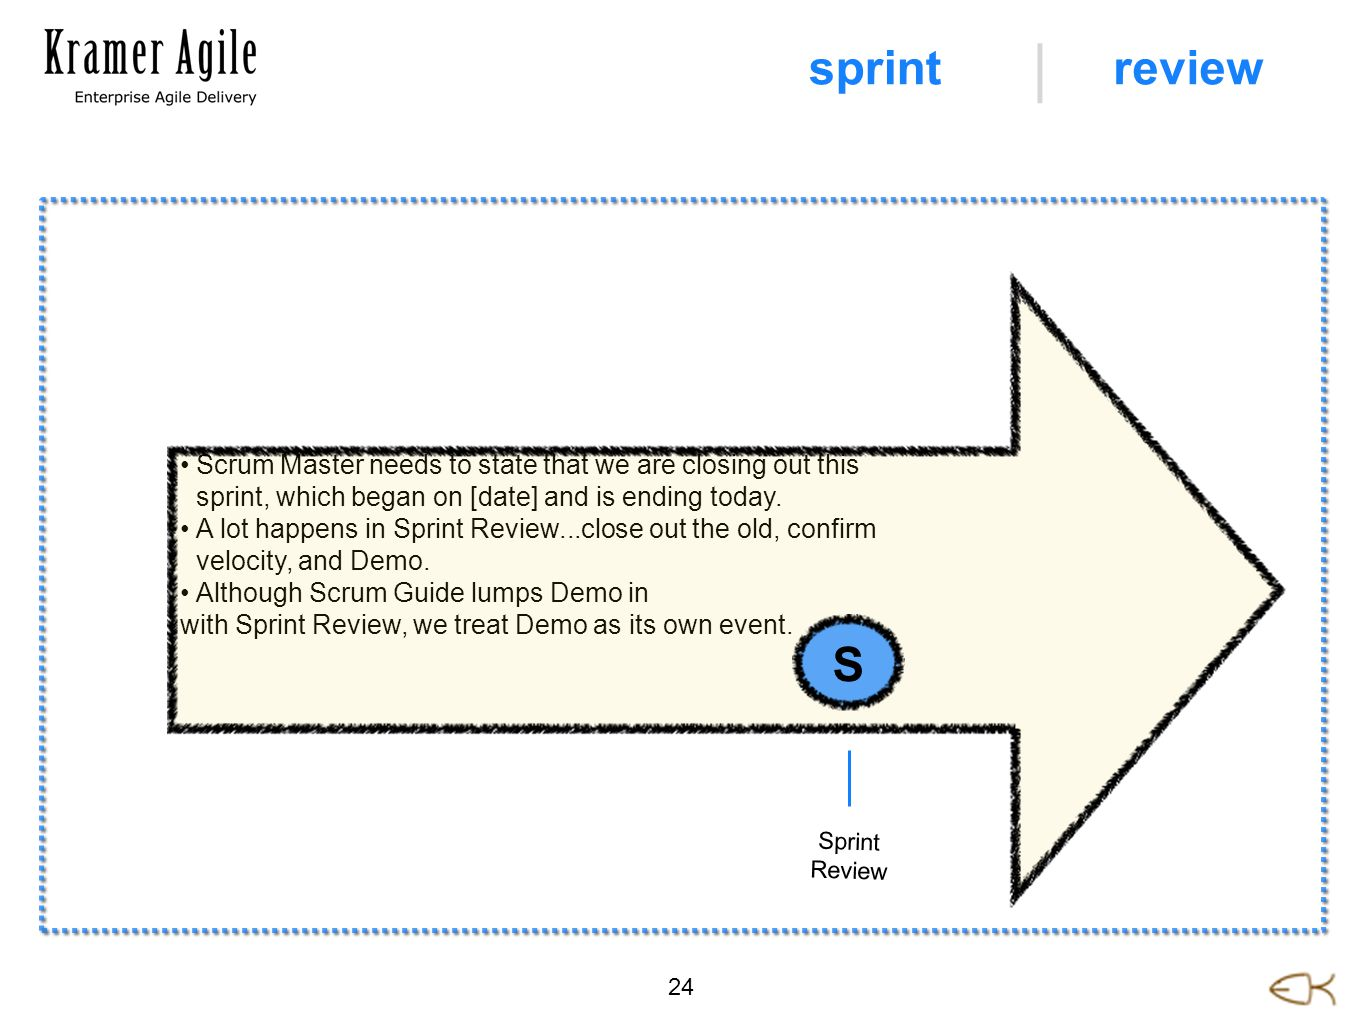 Scrum Master needs to state that we are closing out this sprint, which began on [date] and is ending today. A lot happens in Sprint Review...close out